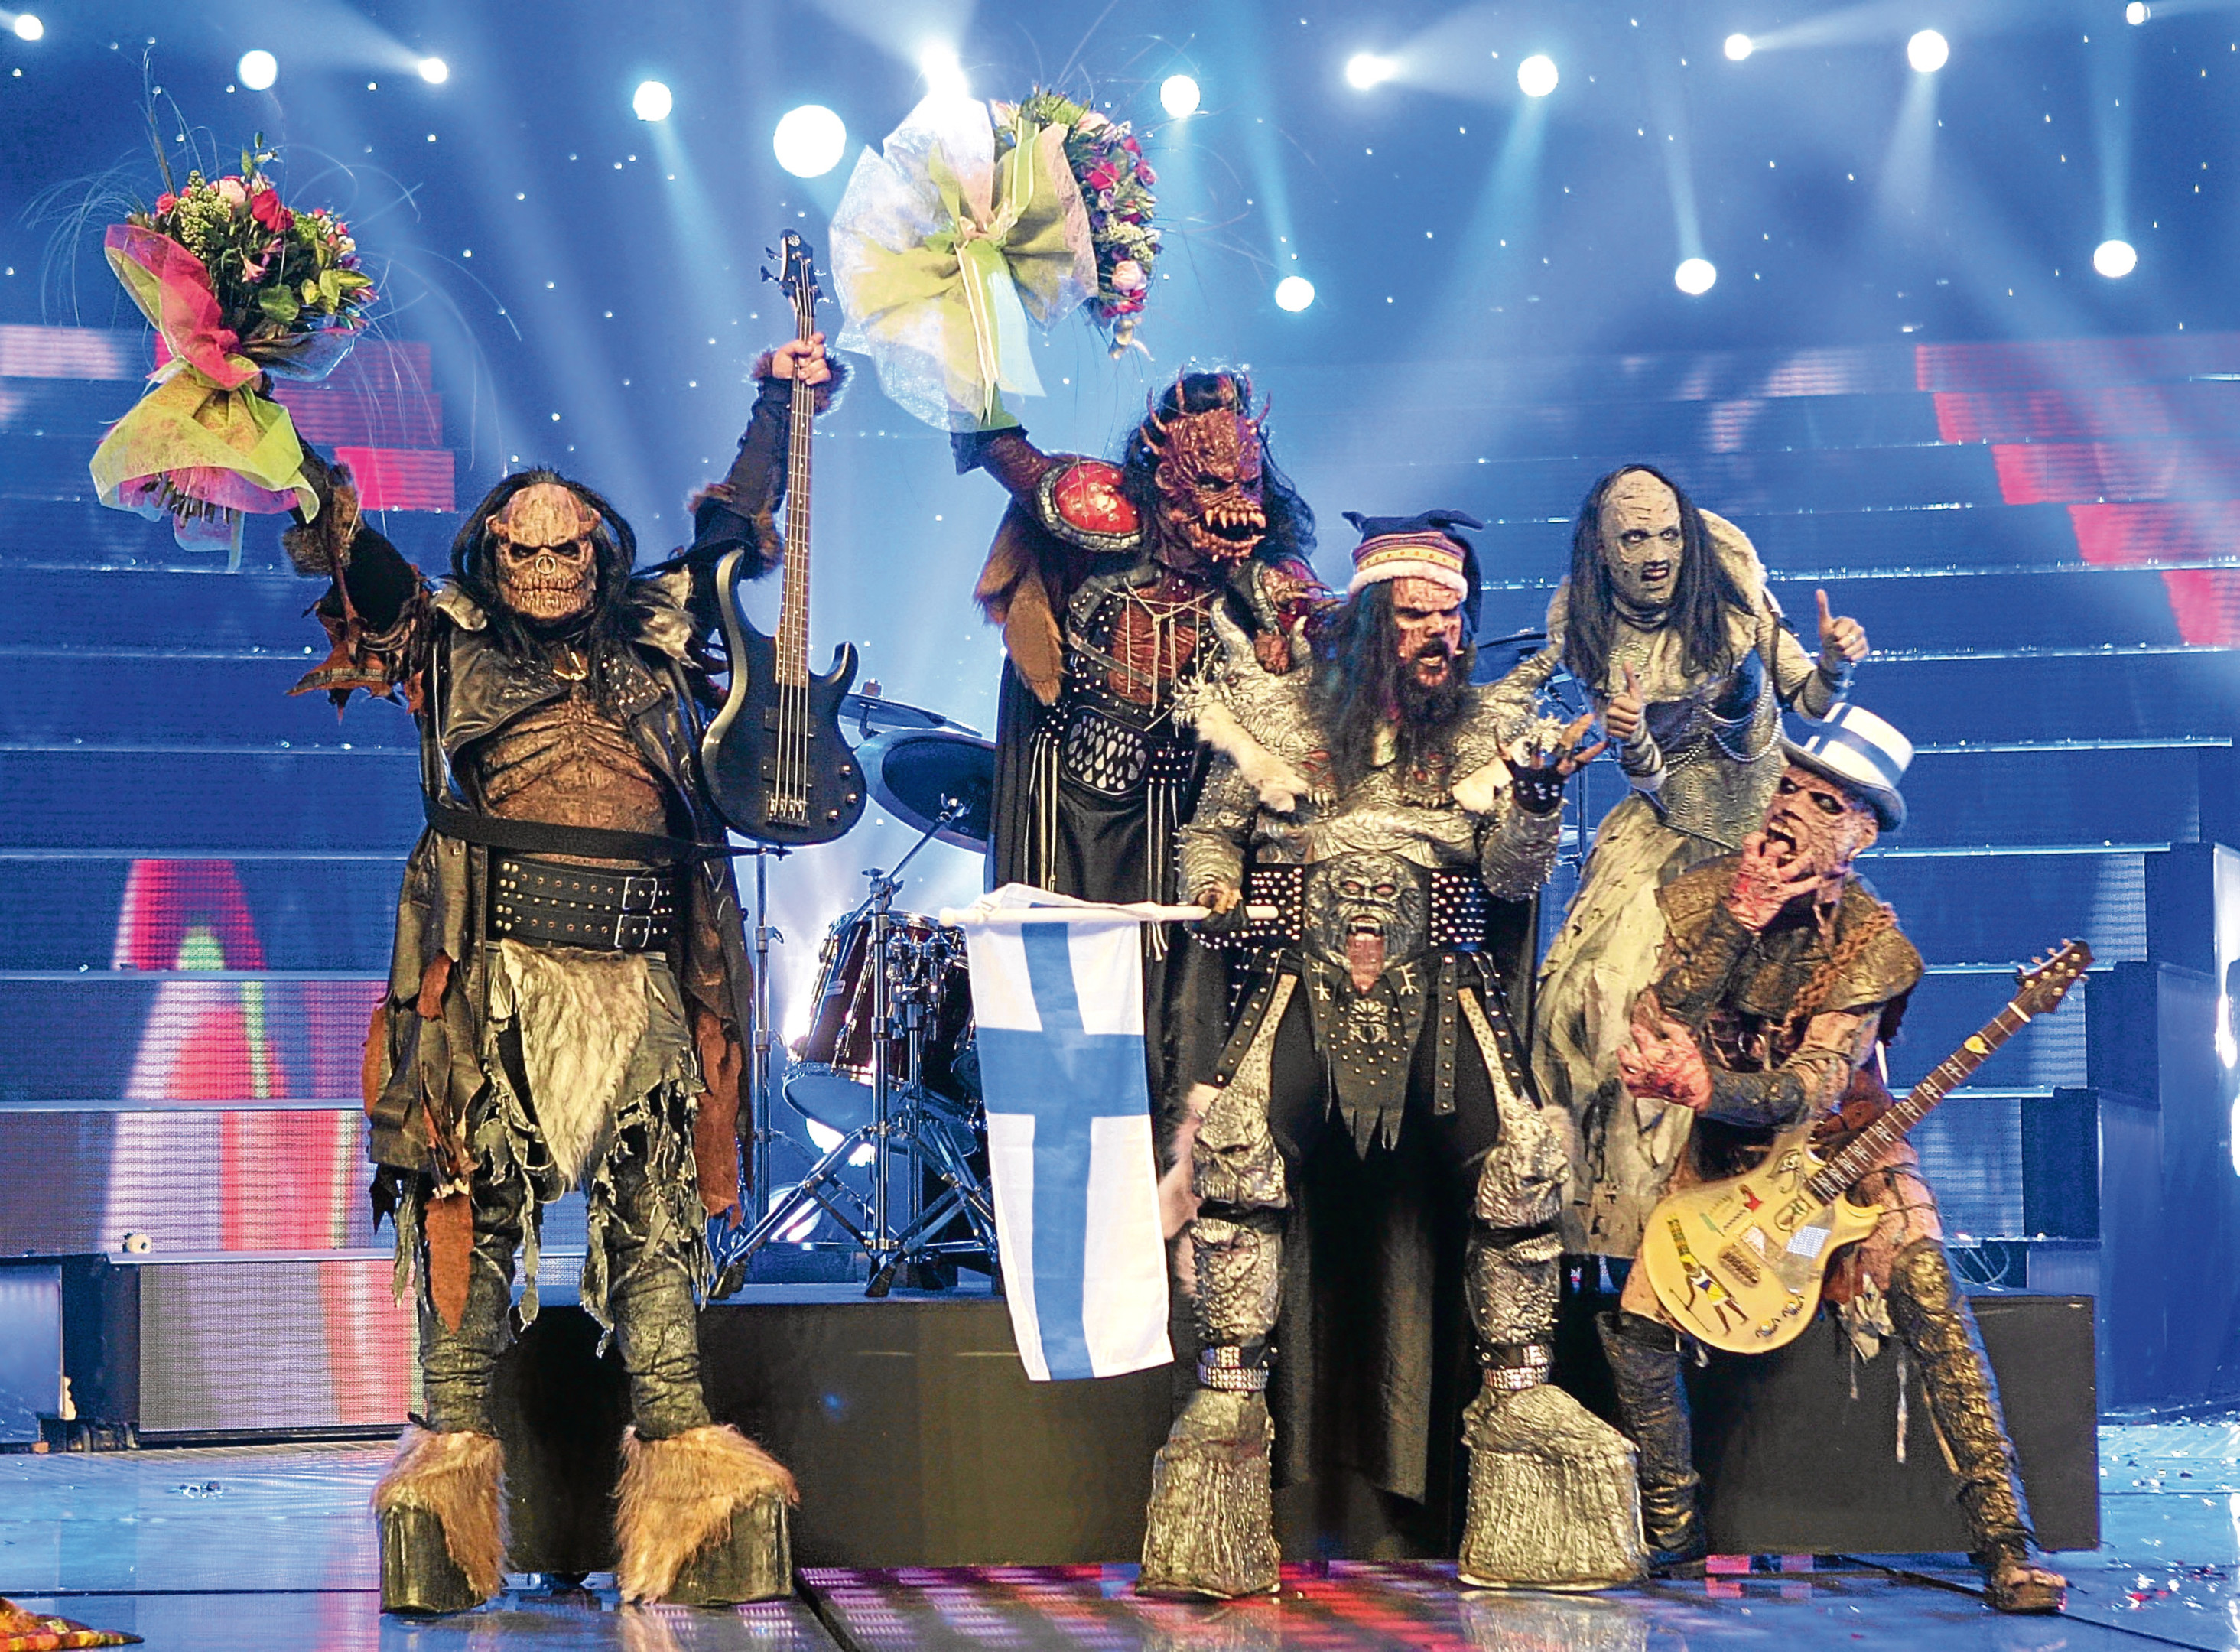 Monster rock band Lordi of Finland celebrate their victory in the 2006 Eurovision Song Contest  (Sean Gallup/Getty Images)